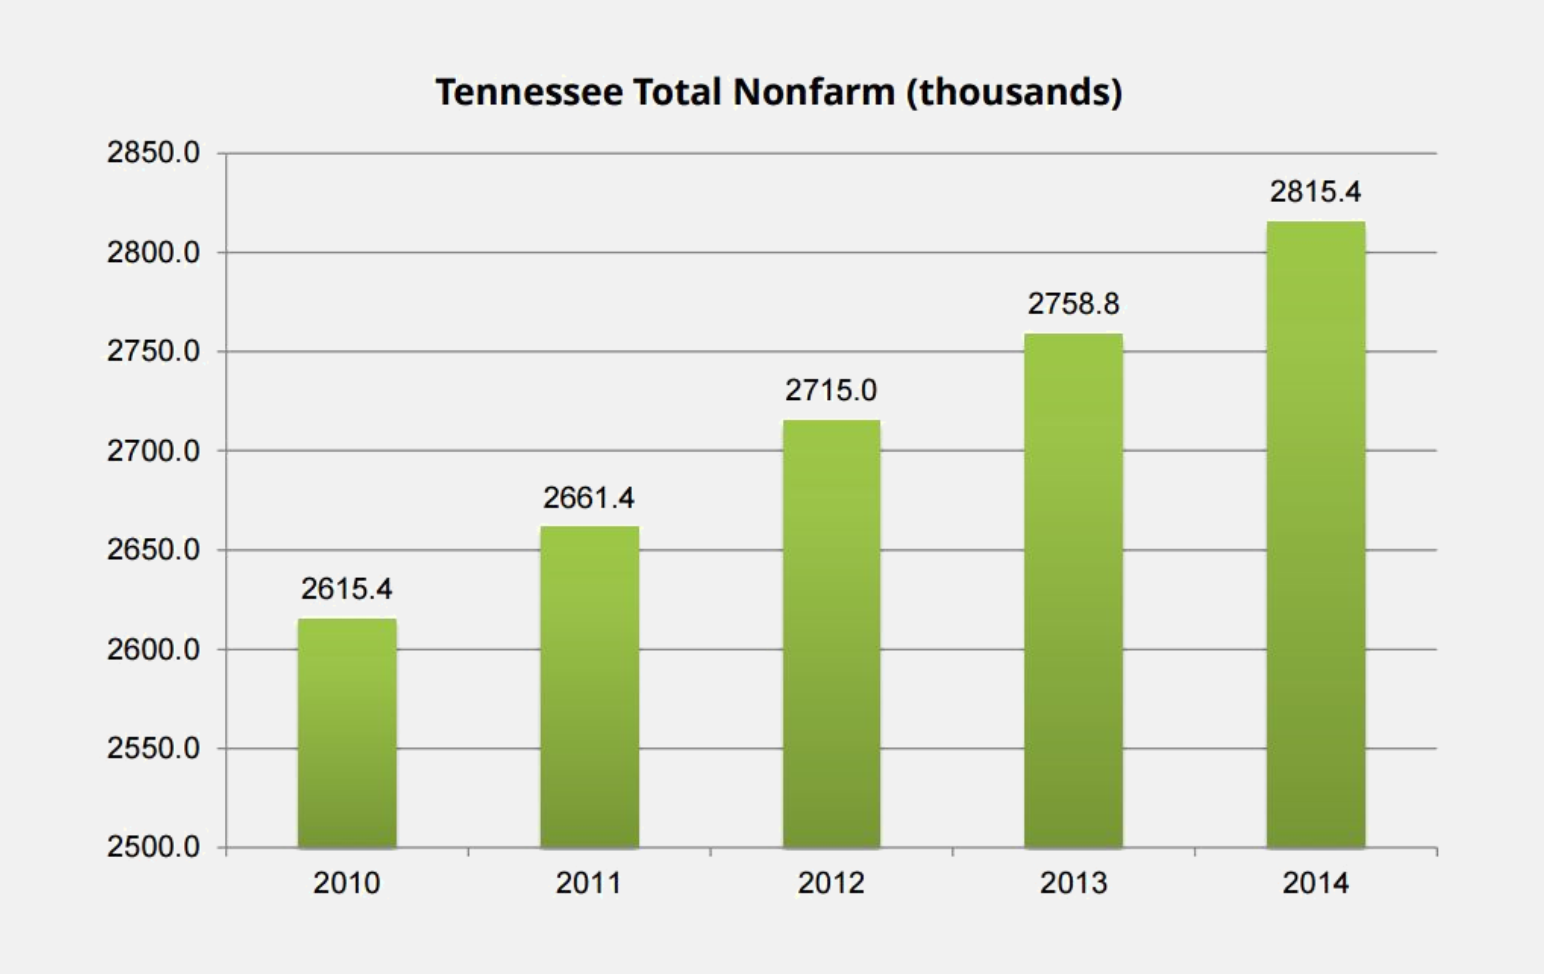 Tools proportional ink bar chart of non farm jobs in tennessee over time geenschuldenfo Gallery